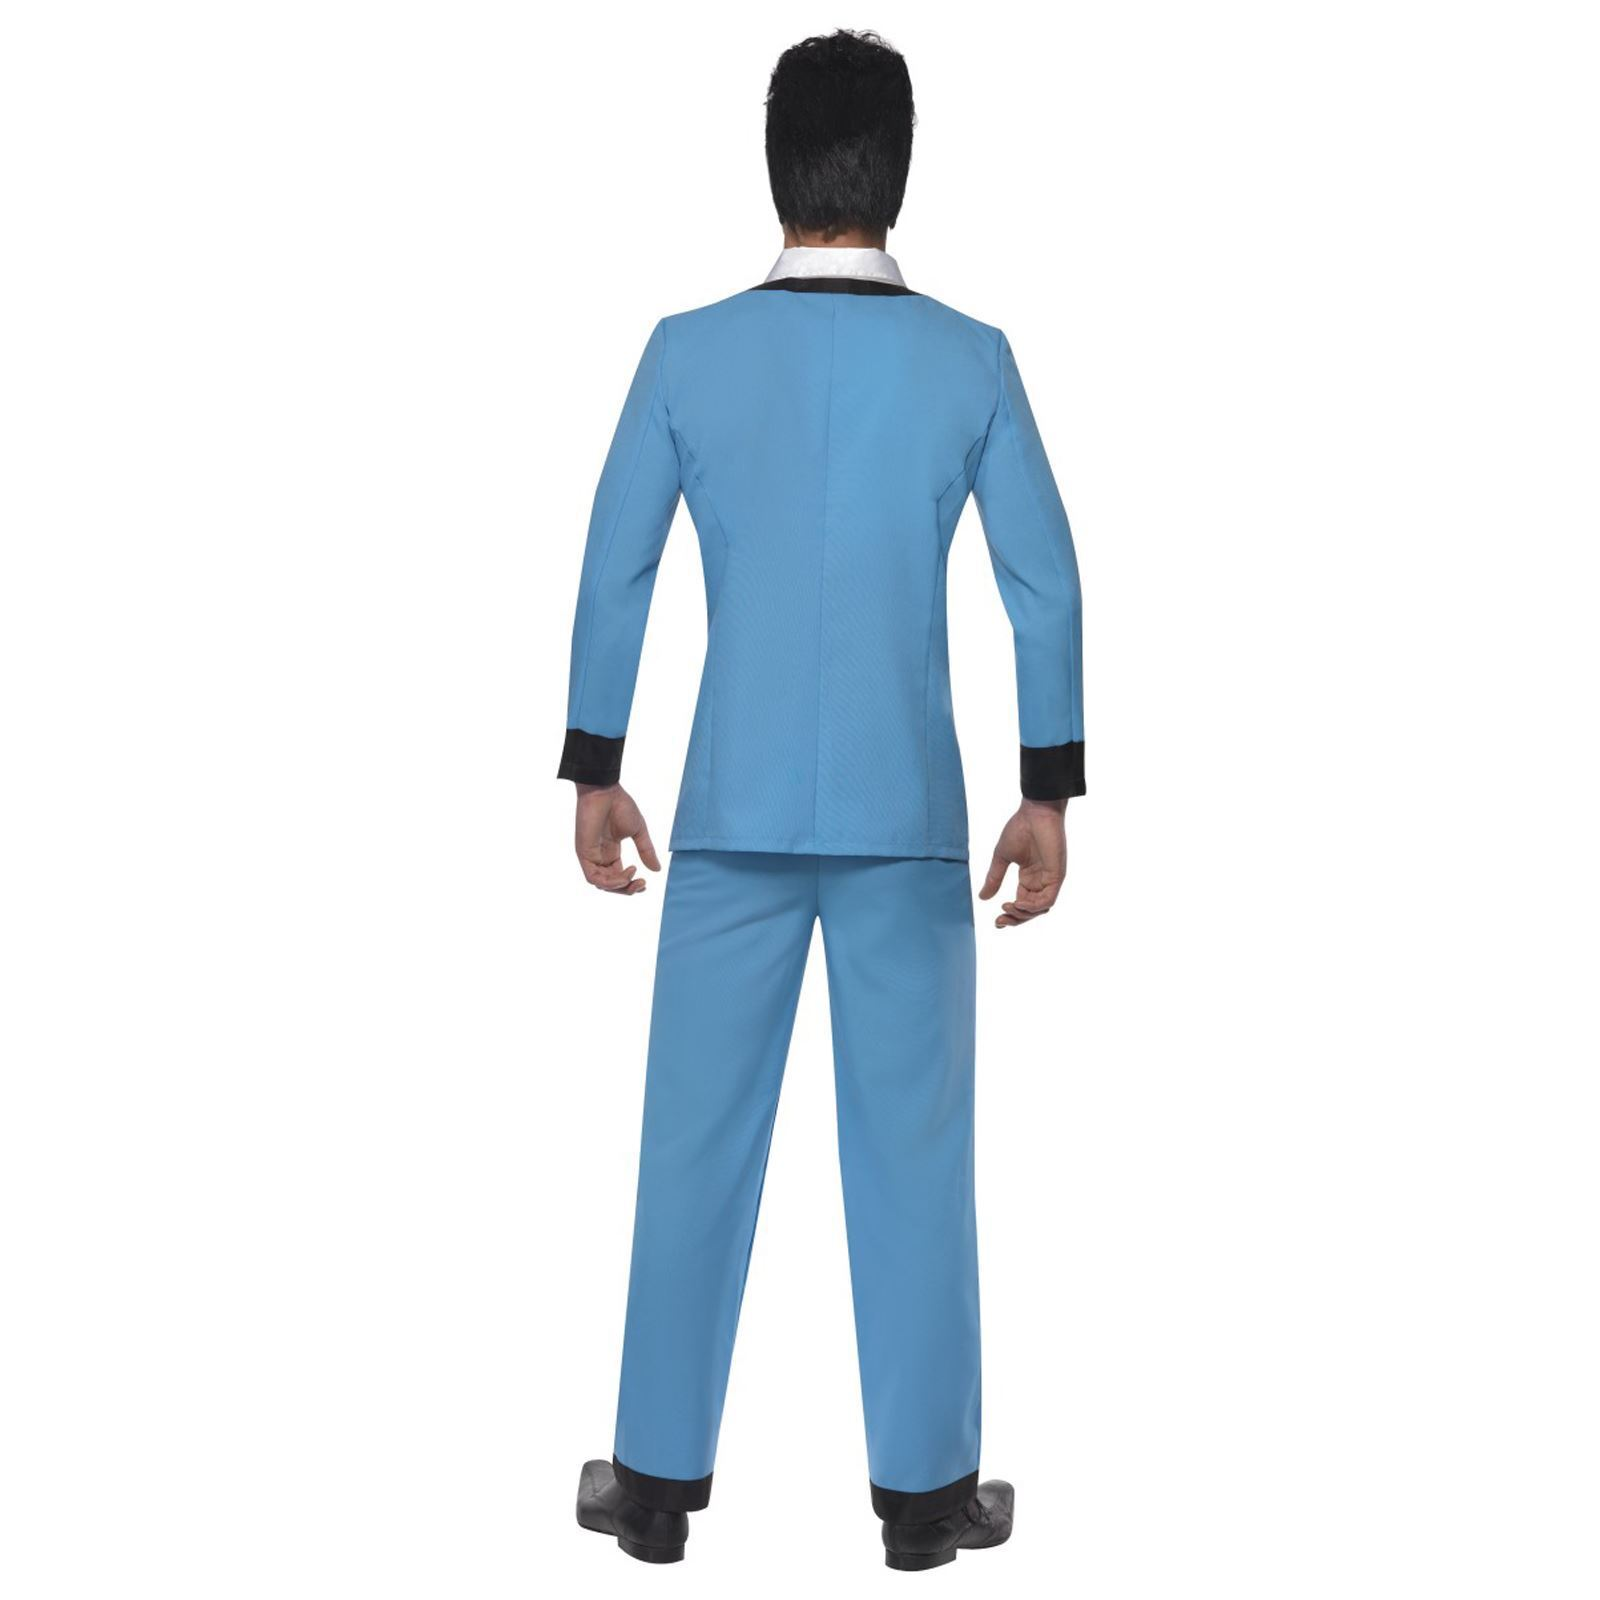 Adult Mens Mens Mens 50s Retro Geek Teddy Boy Music Icon Buddy Fancy Dress Costume Suit | Modern